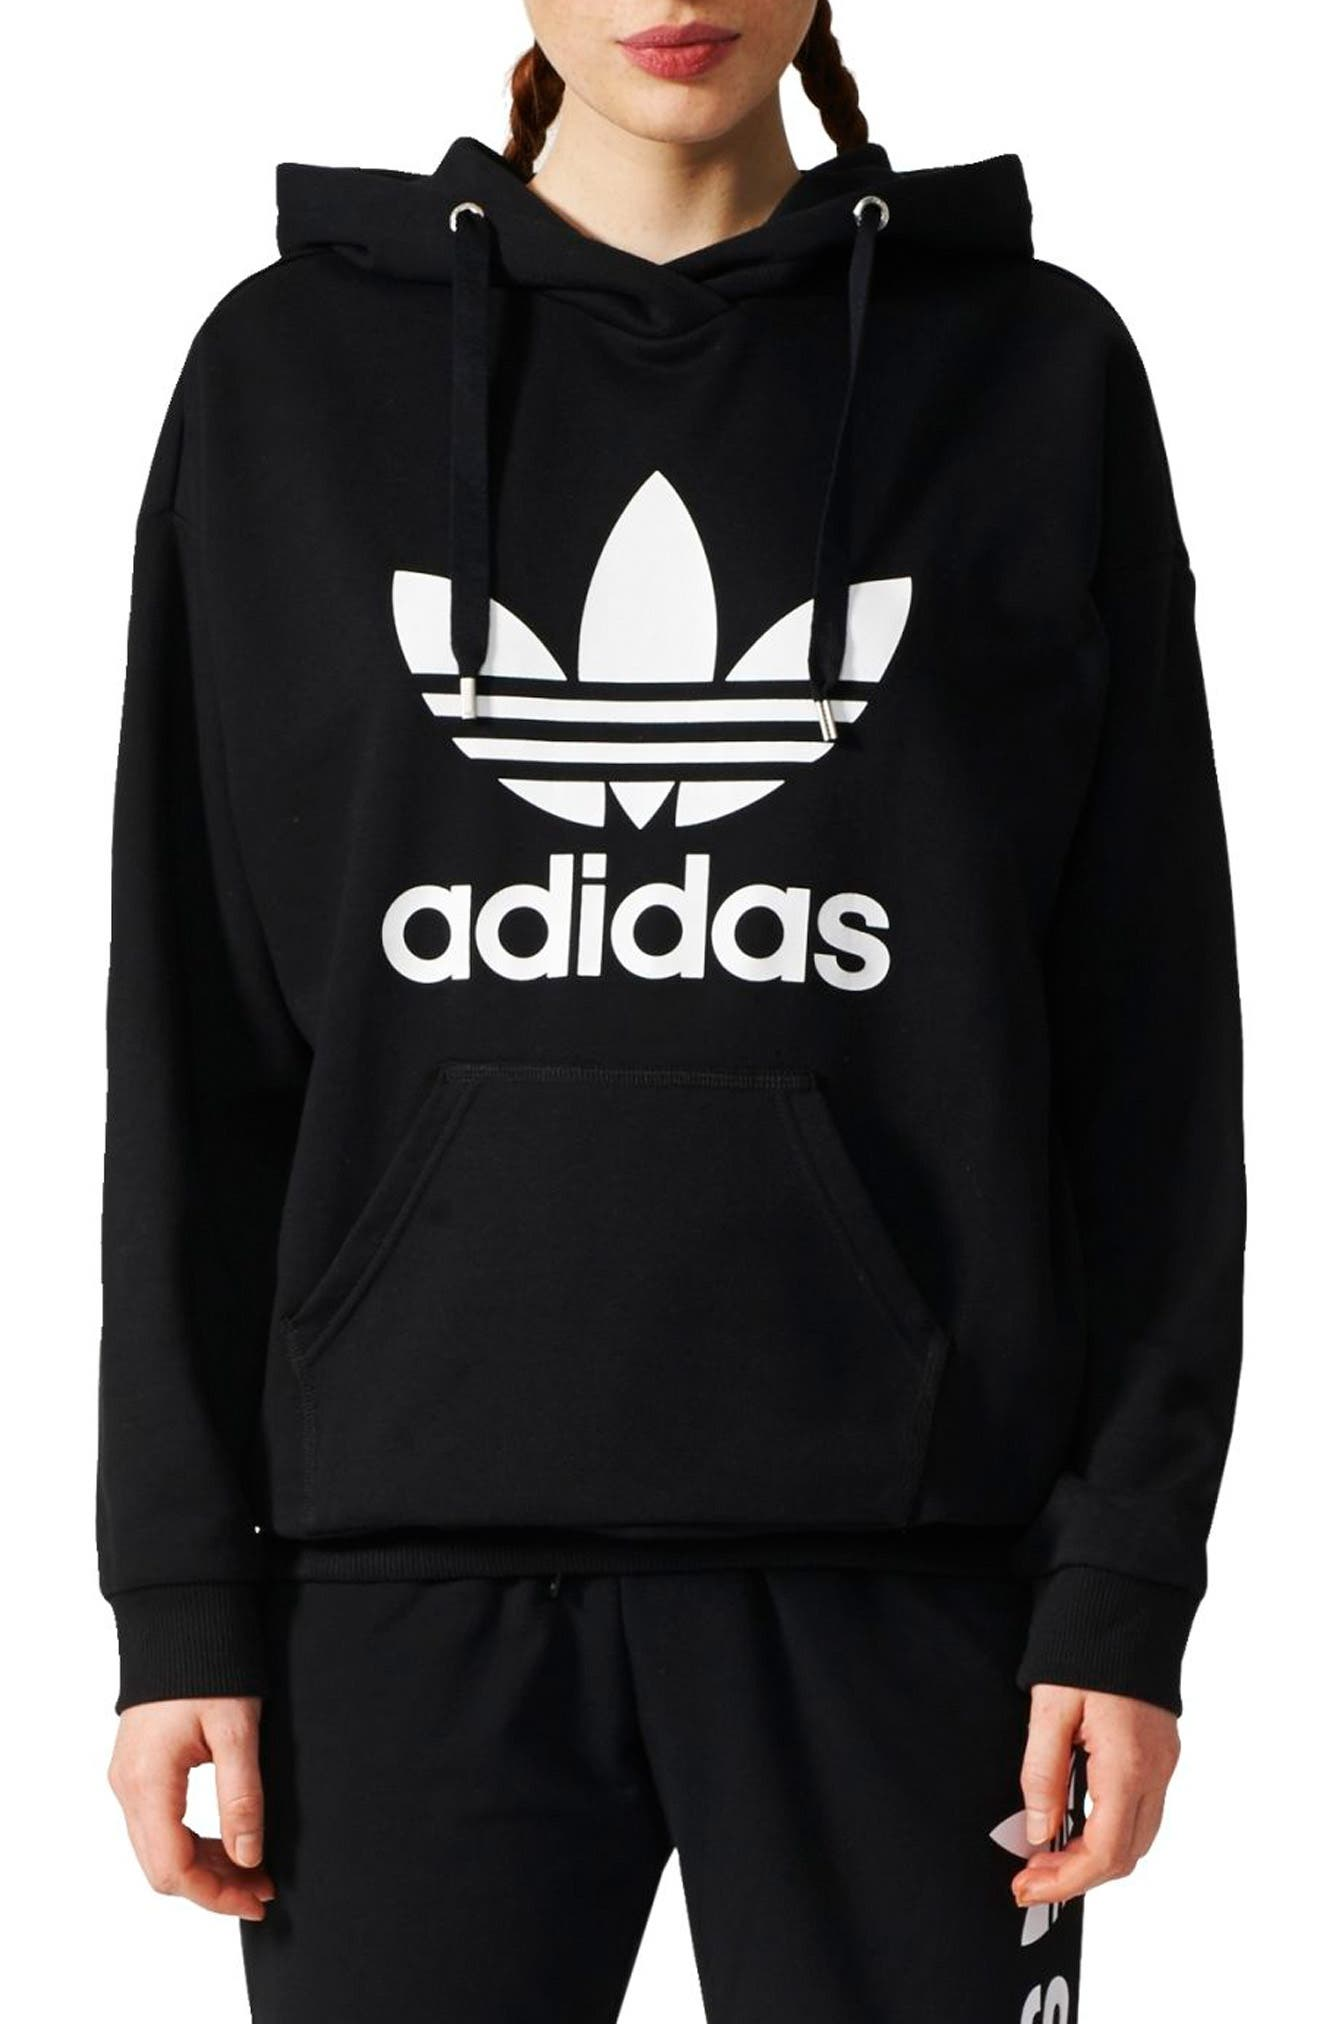 Sweatshirts & Hoodies adidas for Women: Clothing, Accessories ...